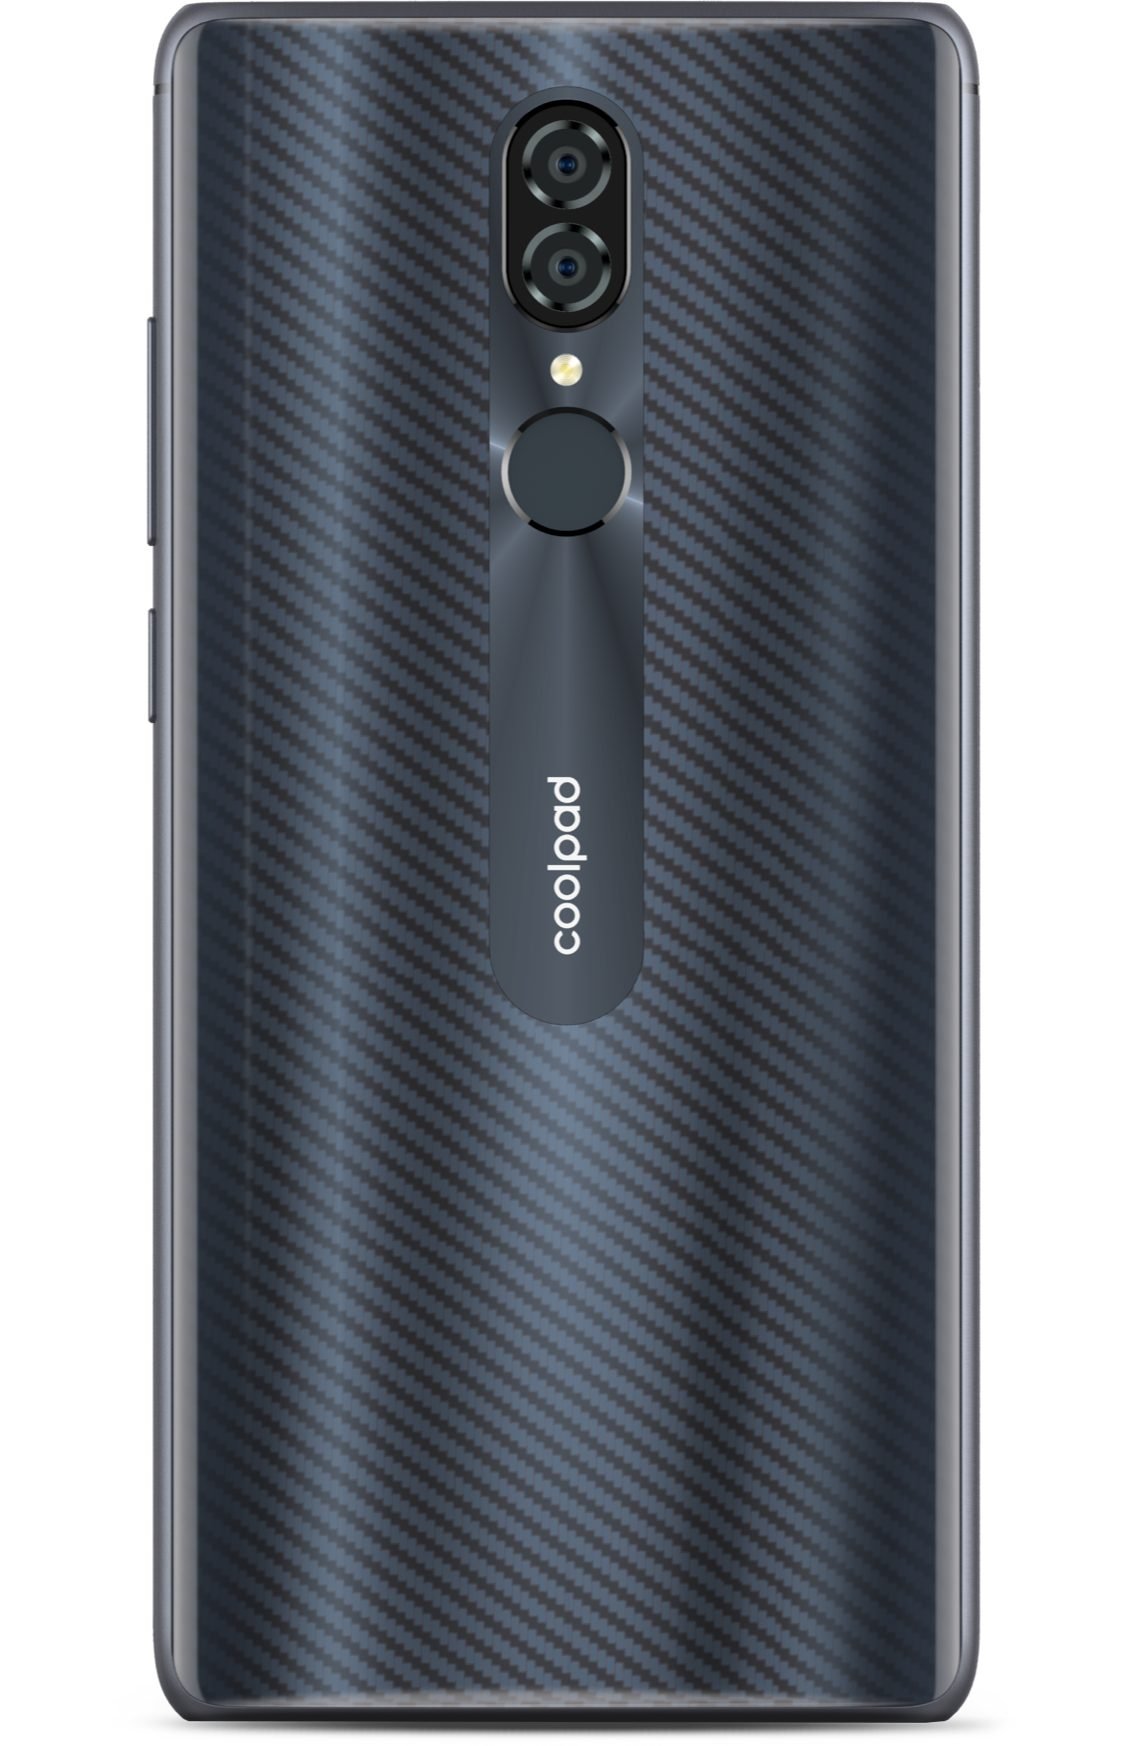 Legacy, 32GB, Medieval Gray, Boost Mobile